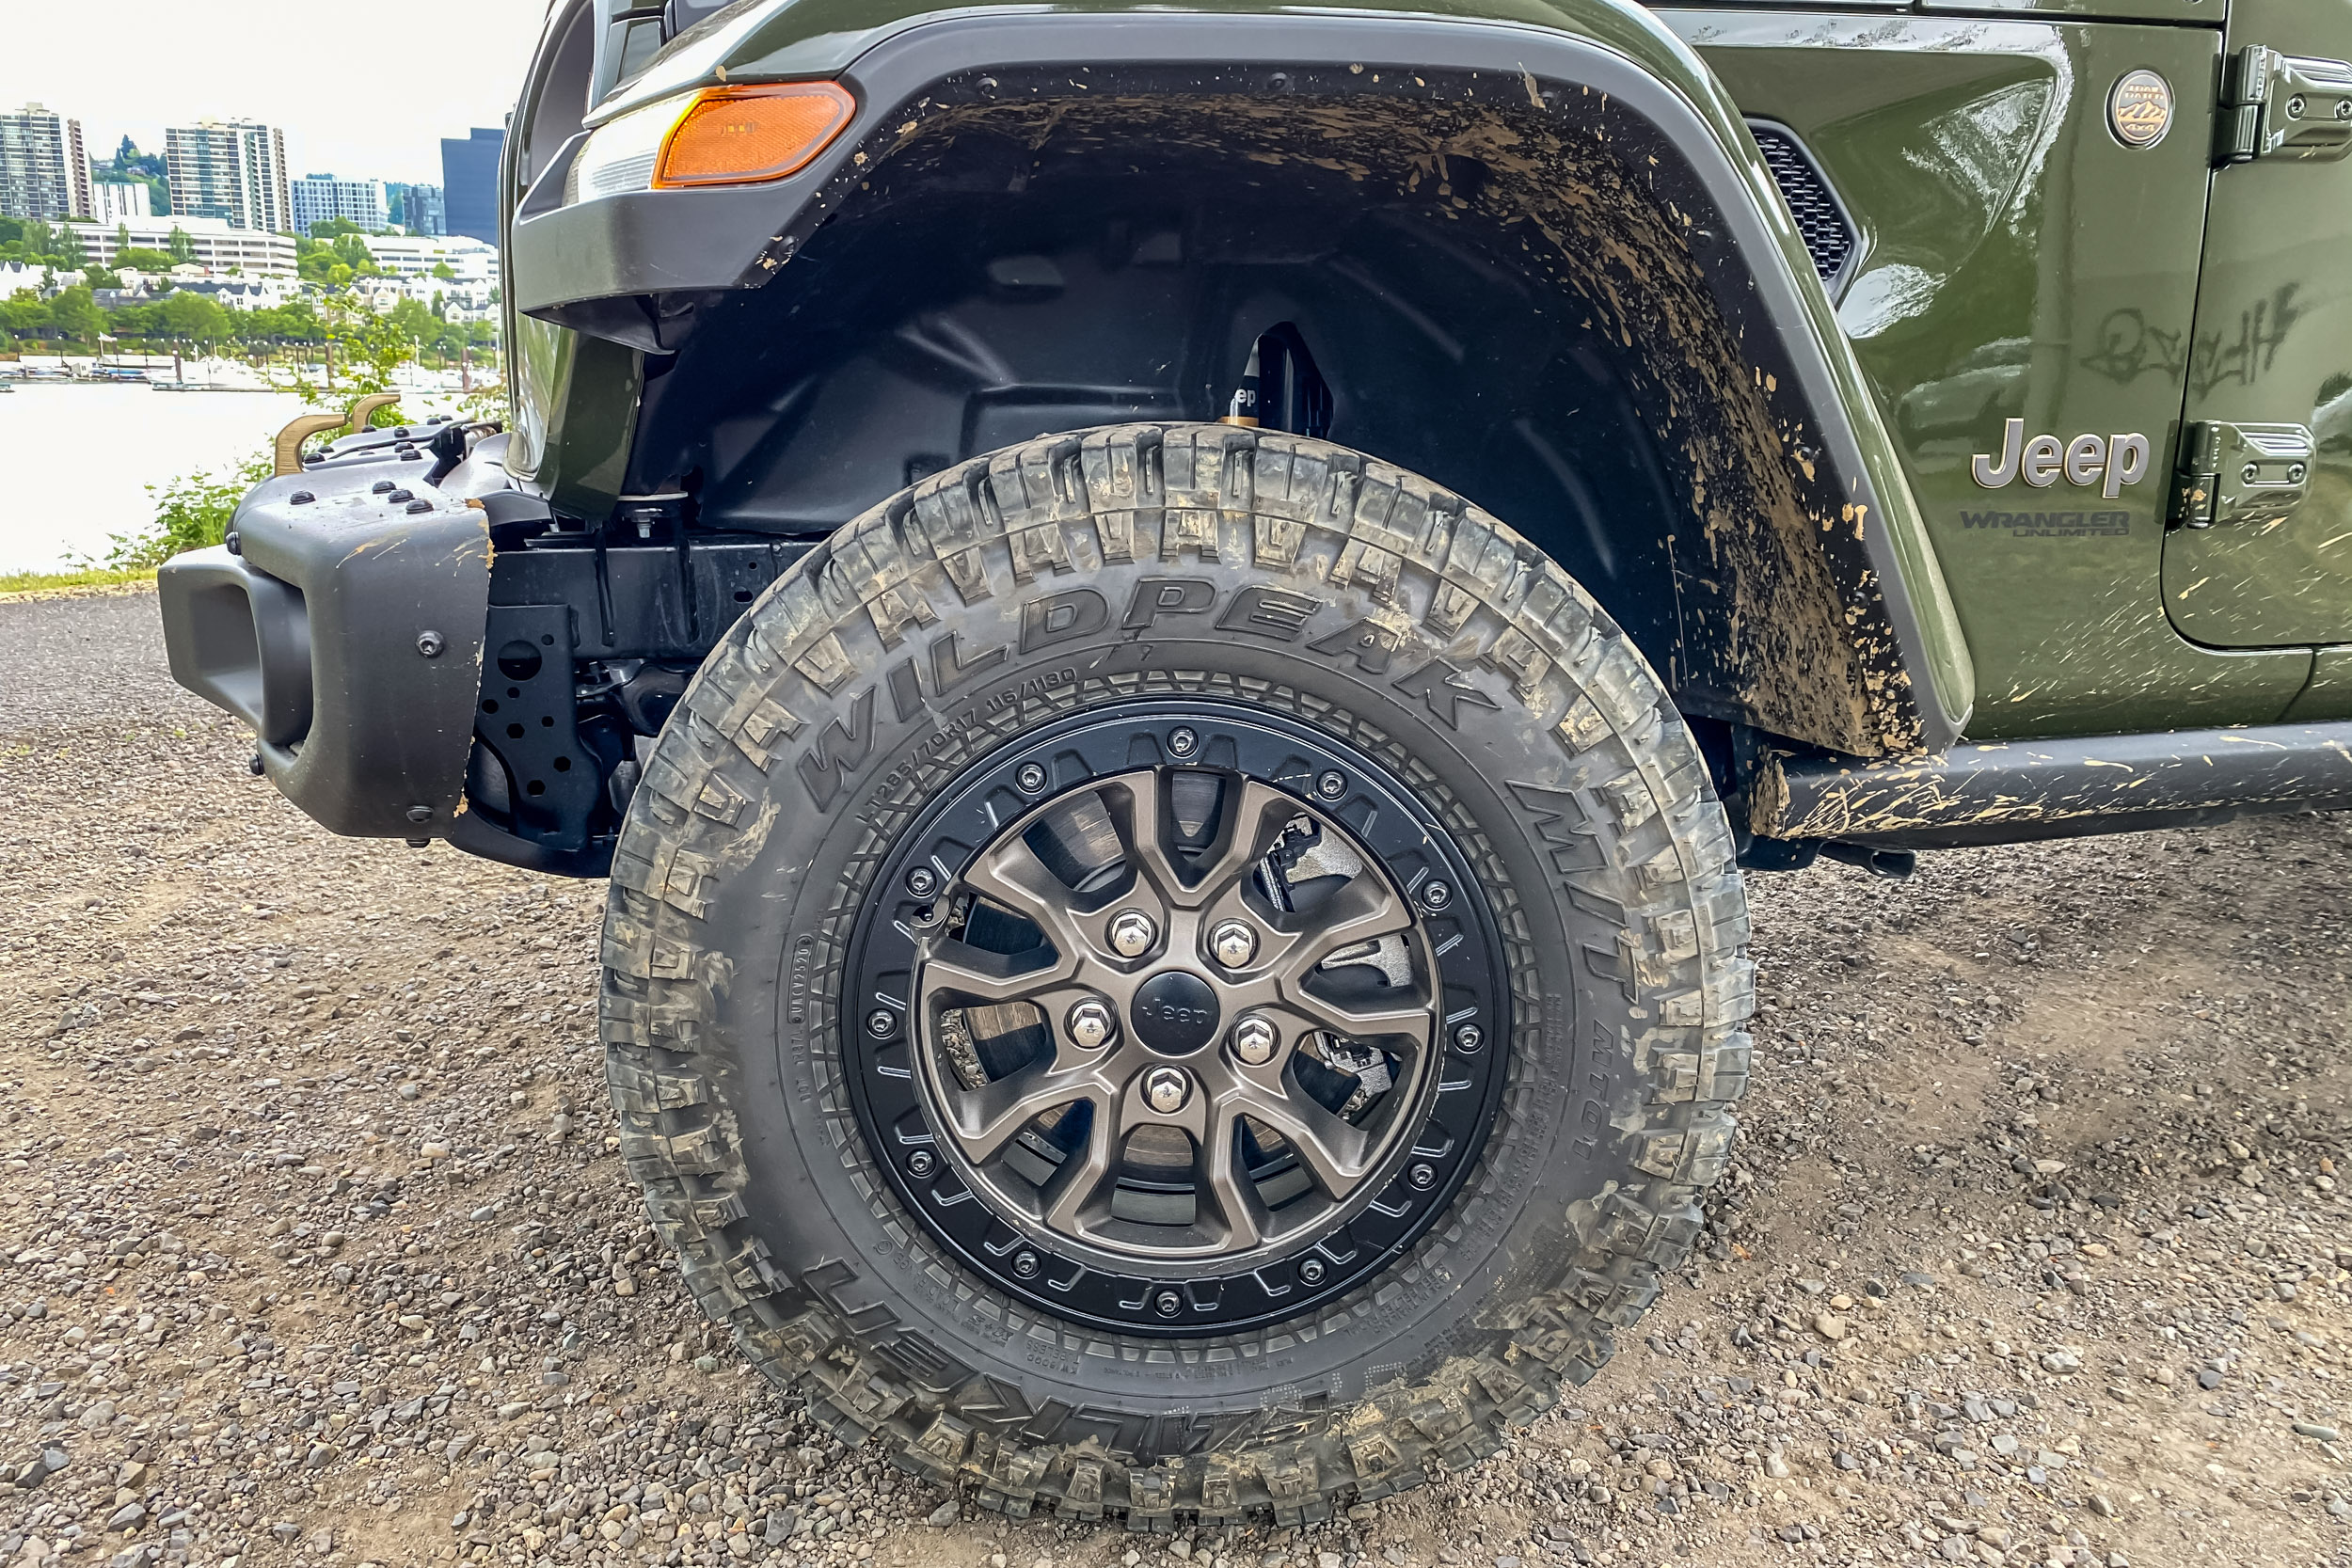 2021 Jeep Wrangler Rubicon 392 wheels and tires